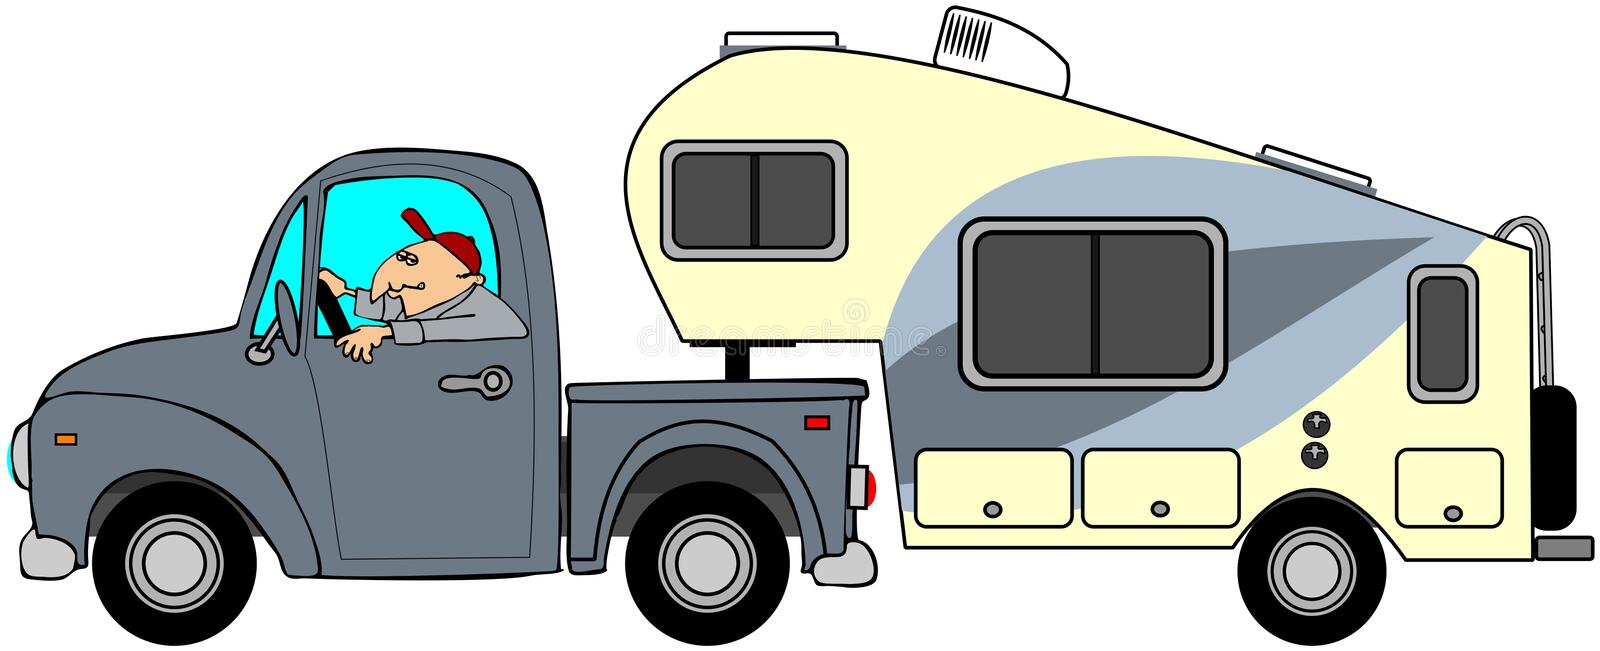 Truck and 5th wheel trailer royalty free illustration